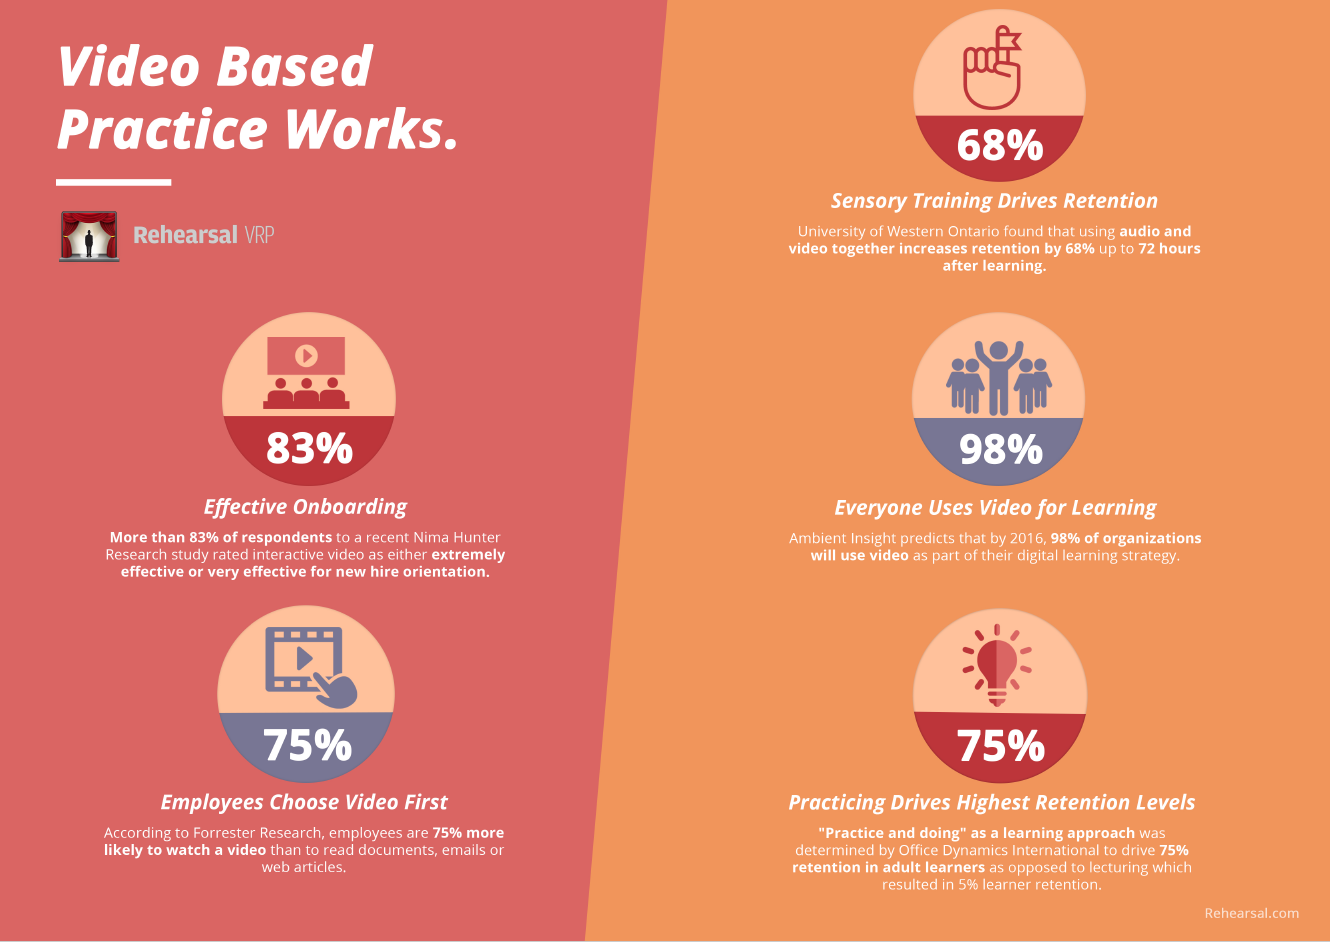 Video Based Practice Works Infographic